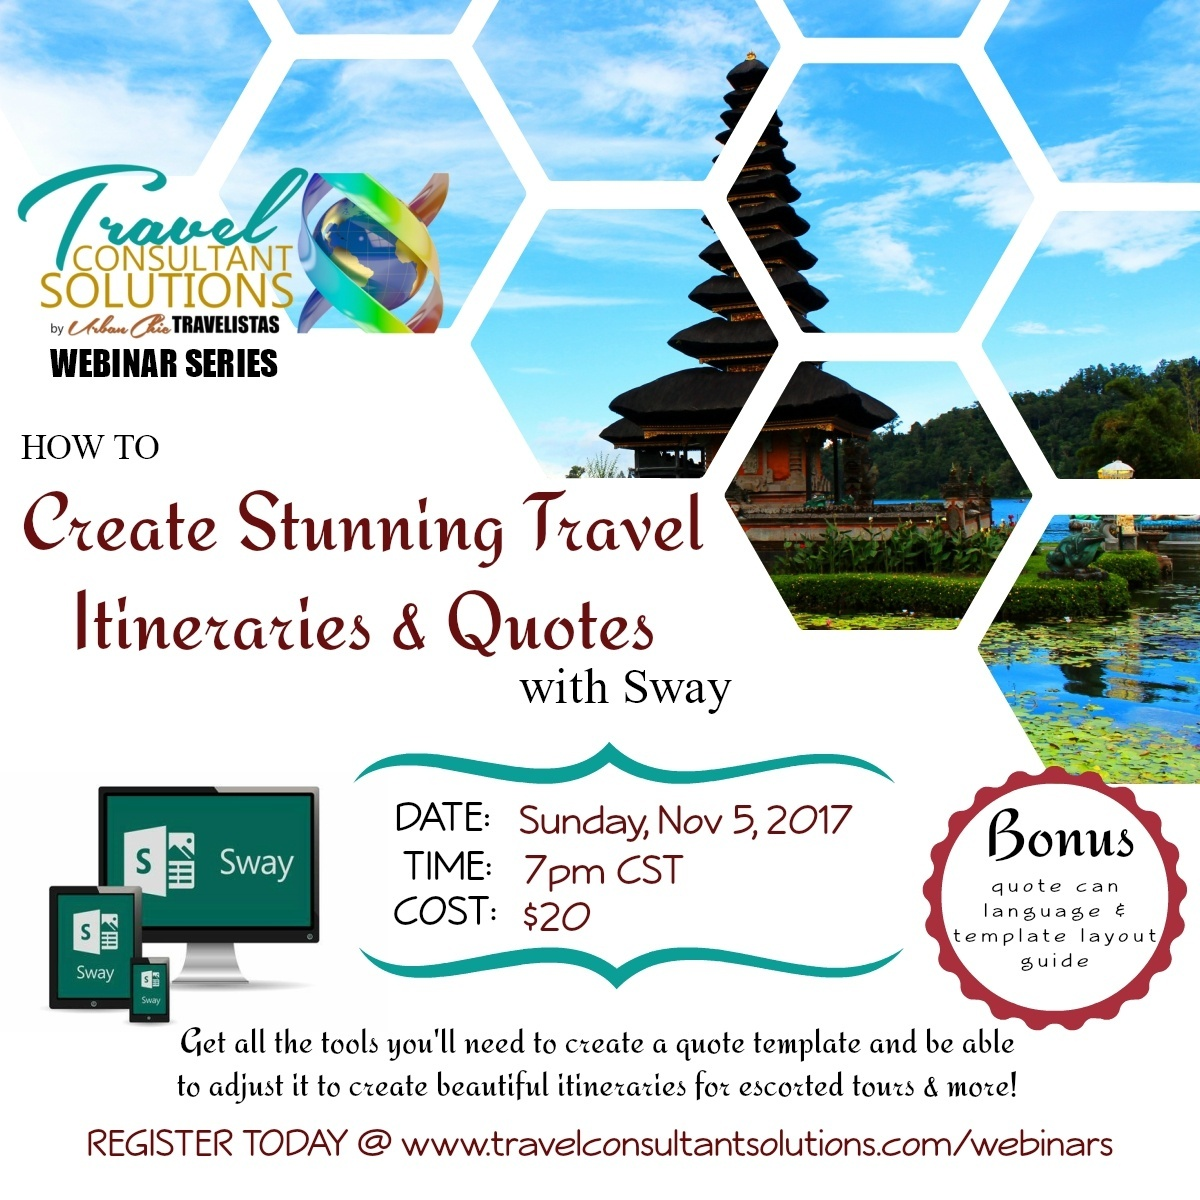 How to Create Stunning Travel Itineraries & Quotes with Sway Webinar